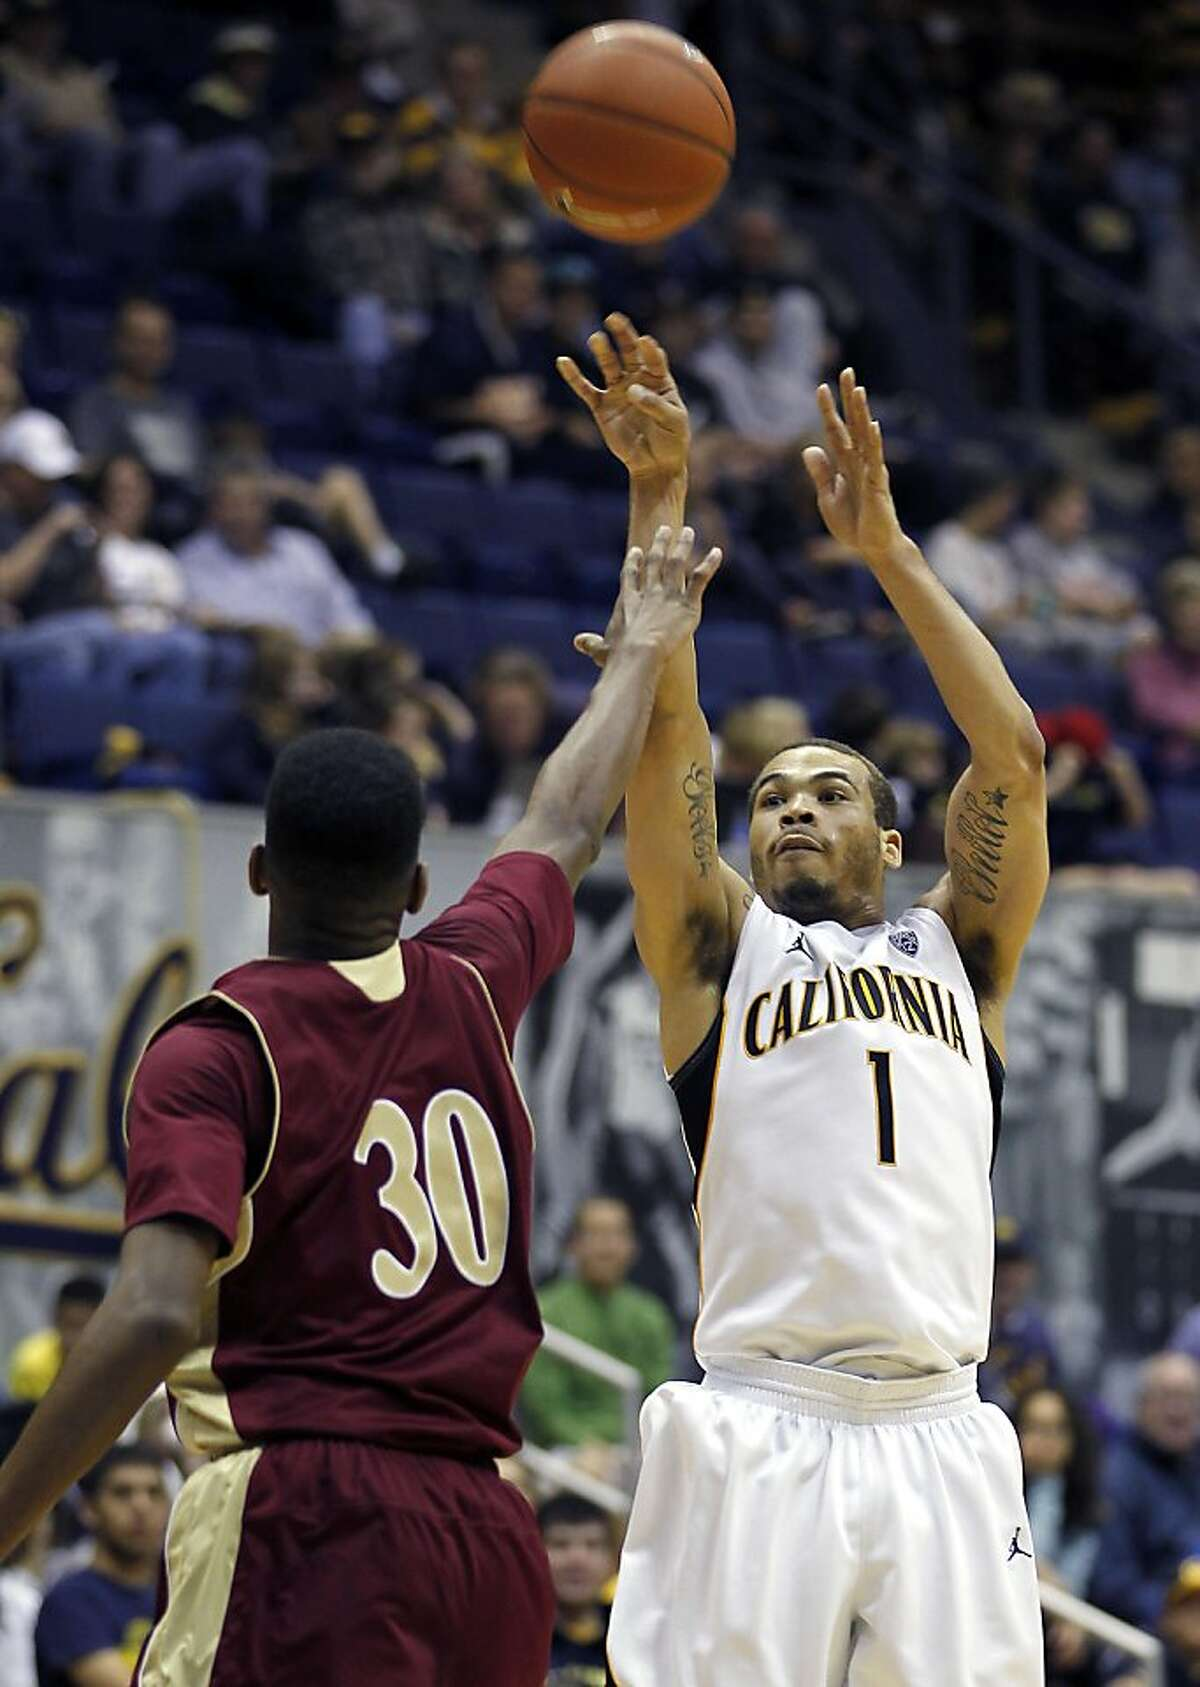 California guard Justin Cobbs (1) takes a shot over Denver guard Cam Griffin (30) during the second half of an NCAA college basketball game in Berkeley, Calif., Saturday, Nov. 26, 2011. California won 80-59. (AP Photo/Tony Avelar)